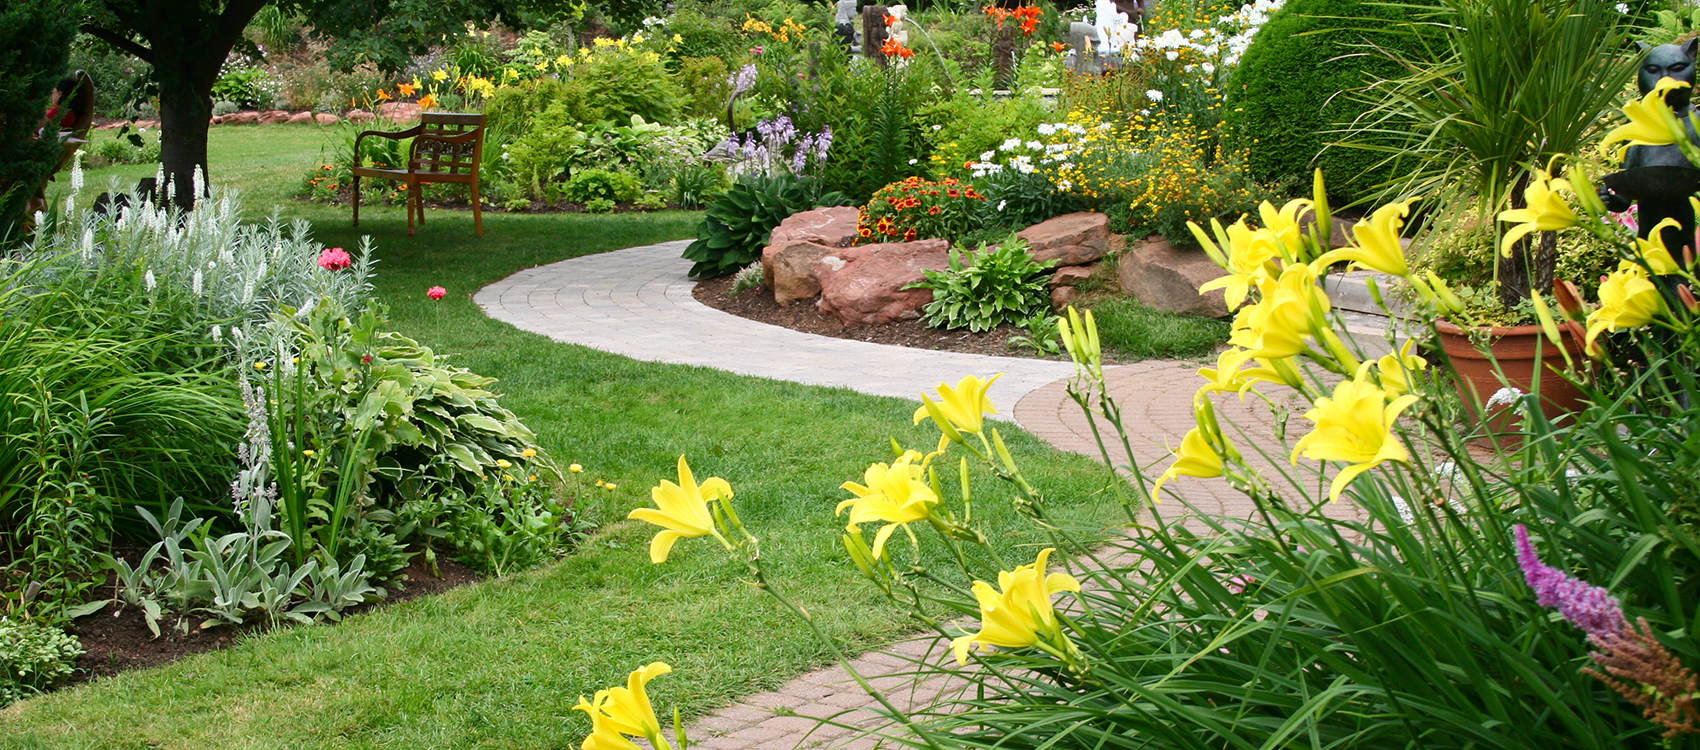 Request an estimate zionsville landscaping services for Home landscaping services